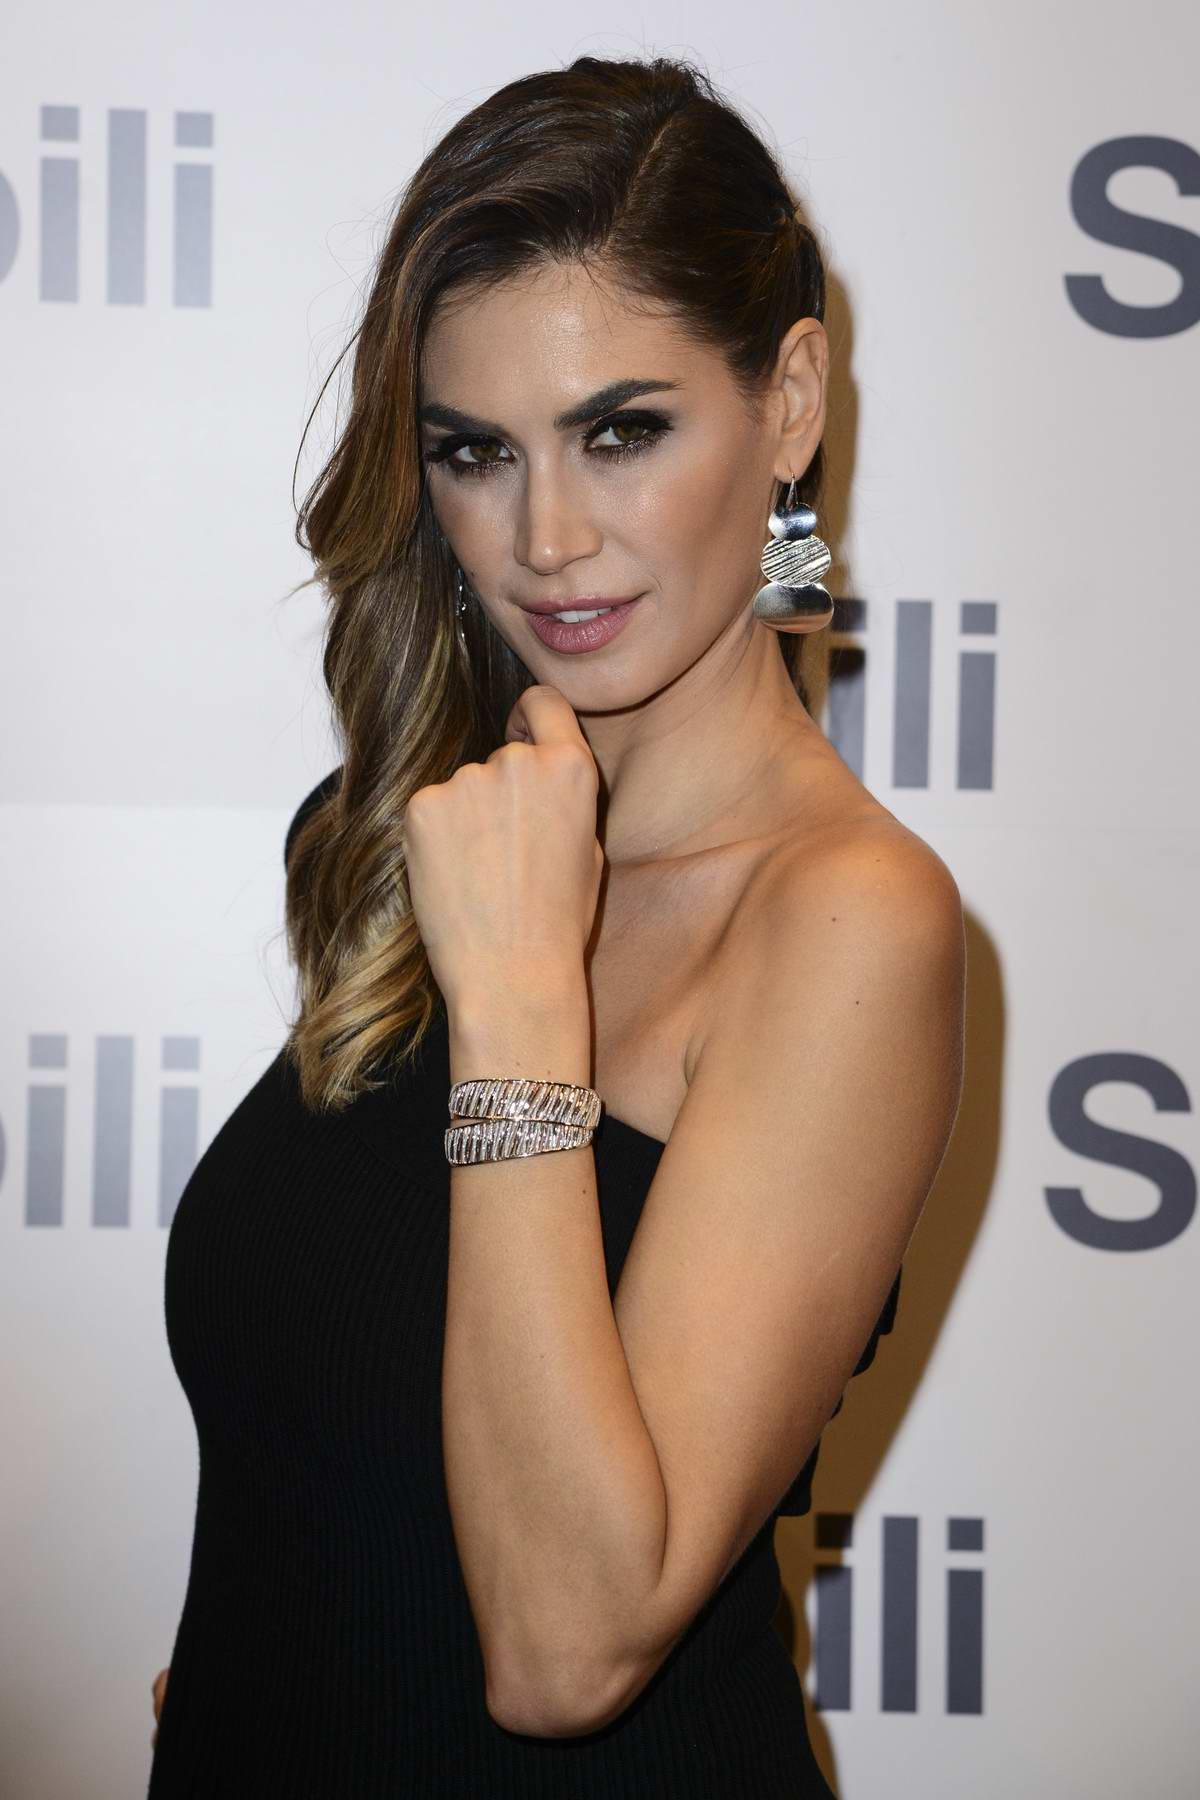 Melissa Satta at Stroili Boutique opening at Citylife Shopping District in Milan, Italy